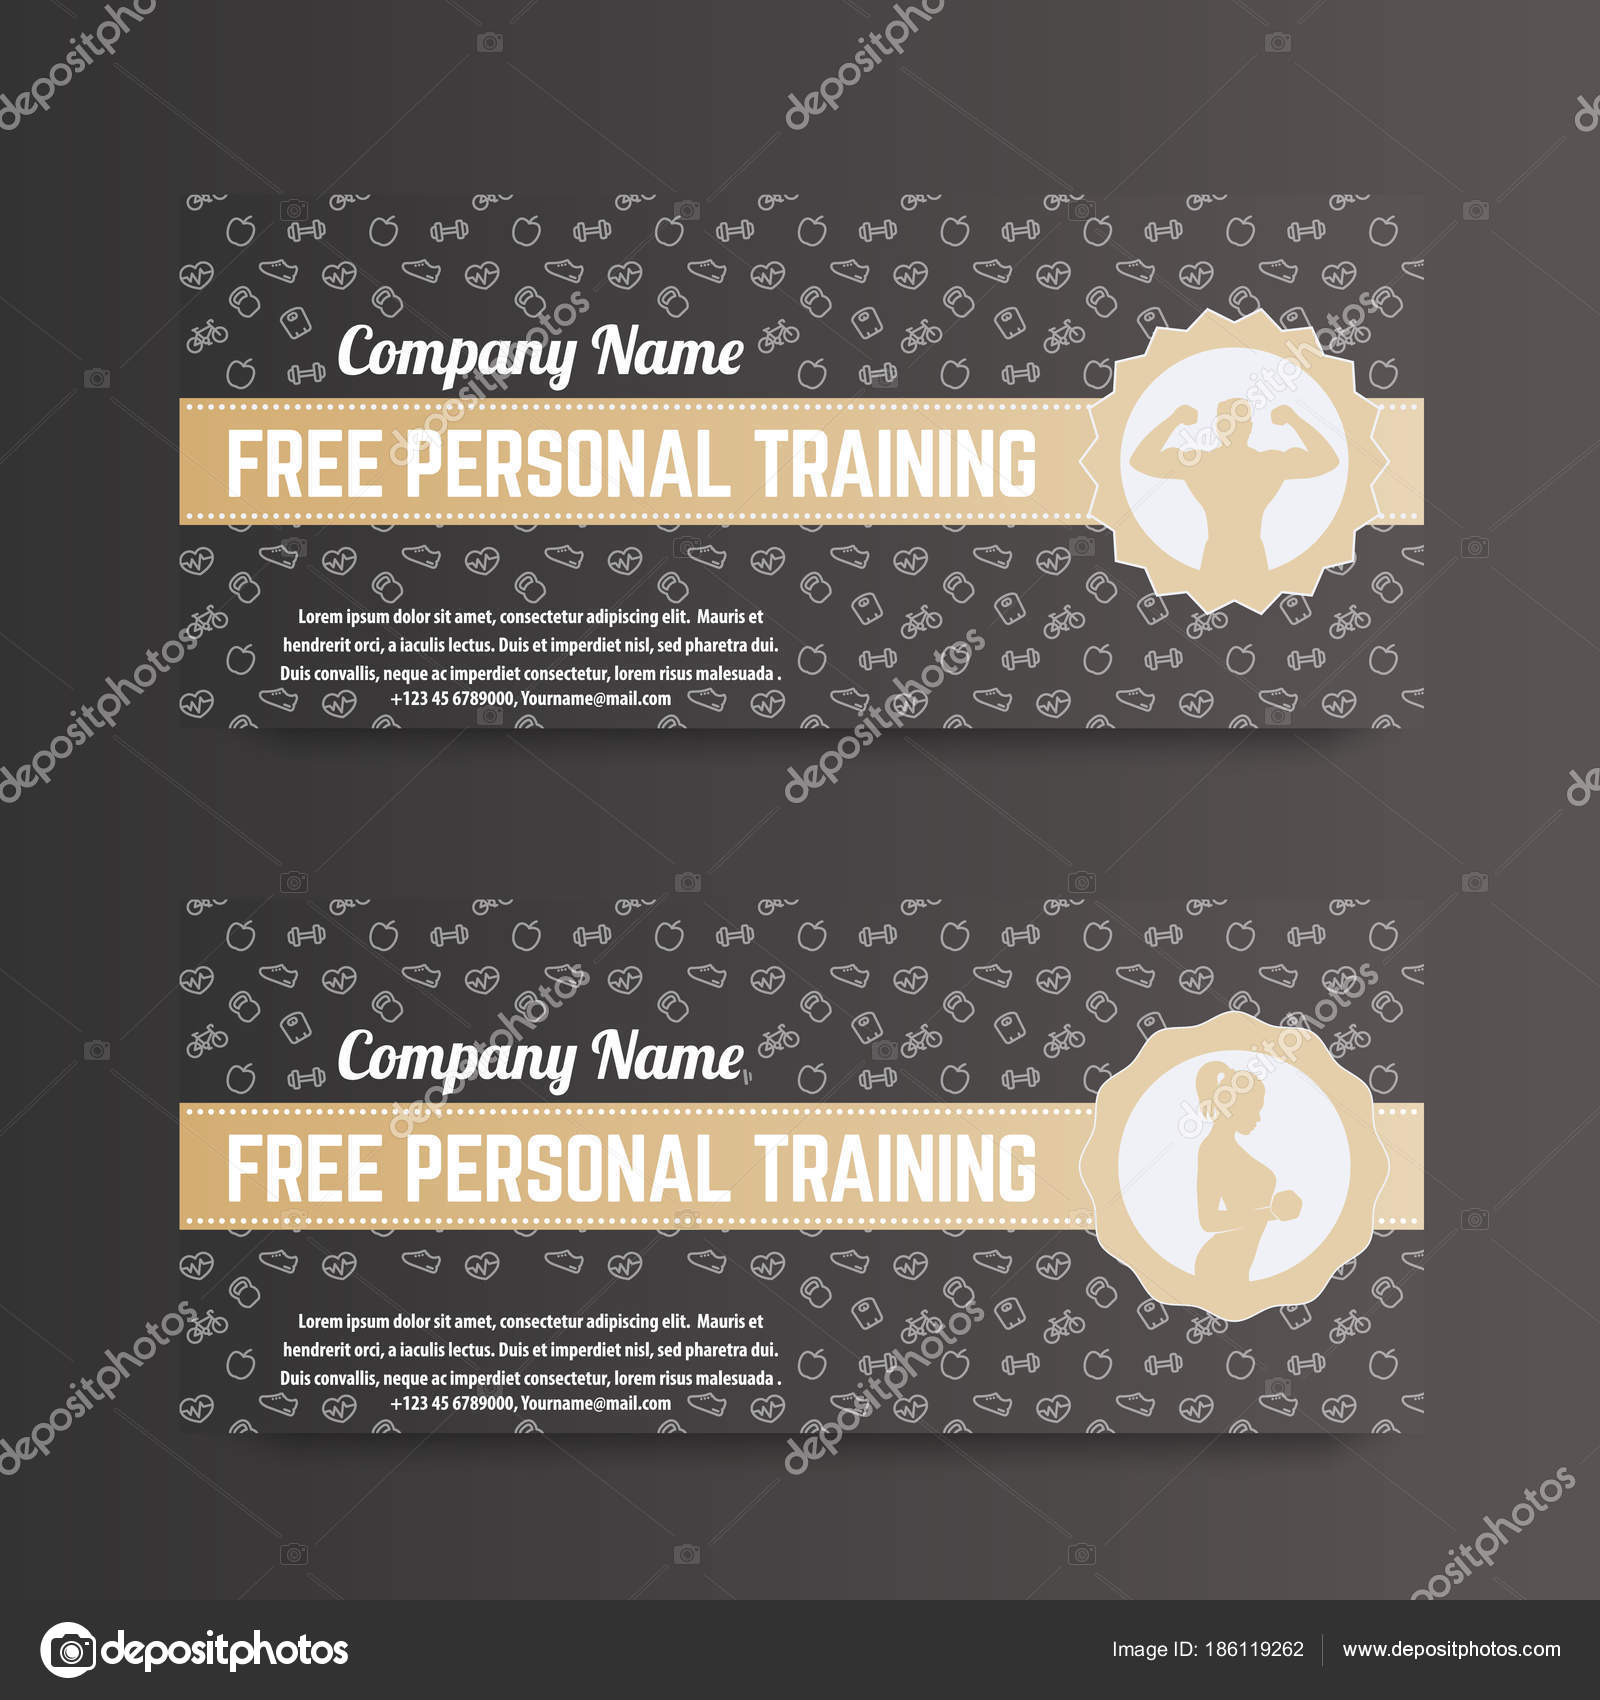 Free personal training gift voucher gym fitness club gold dark free personal training gift voucher gym fitness club gold dark stock vector negle Images